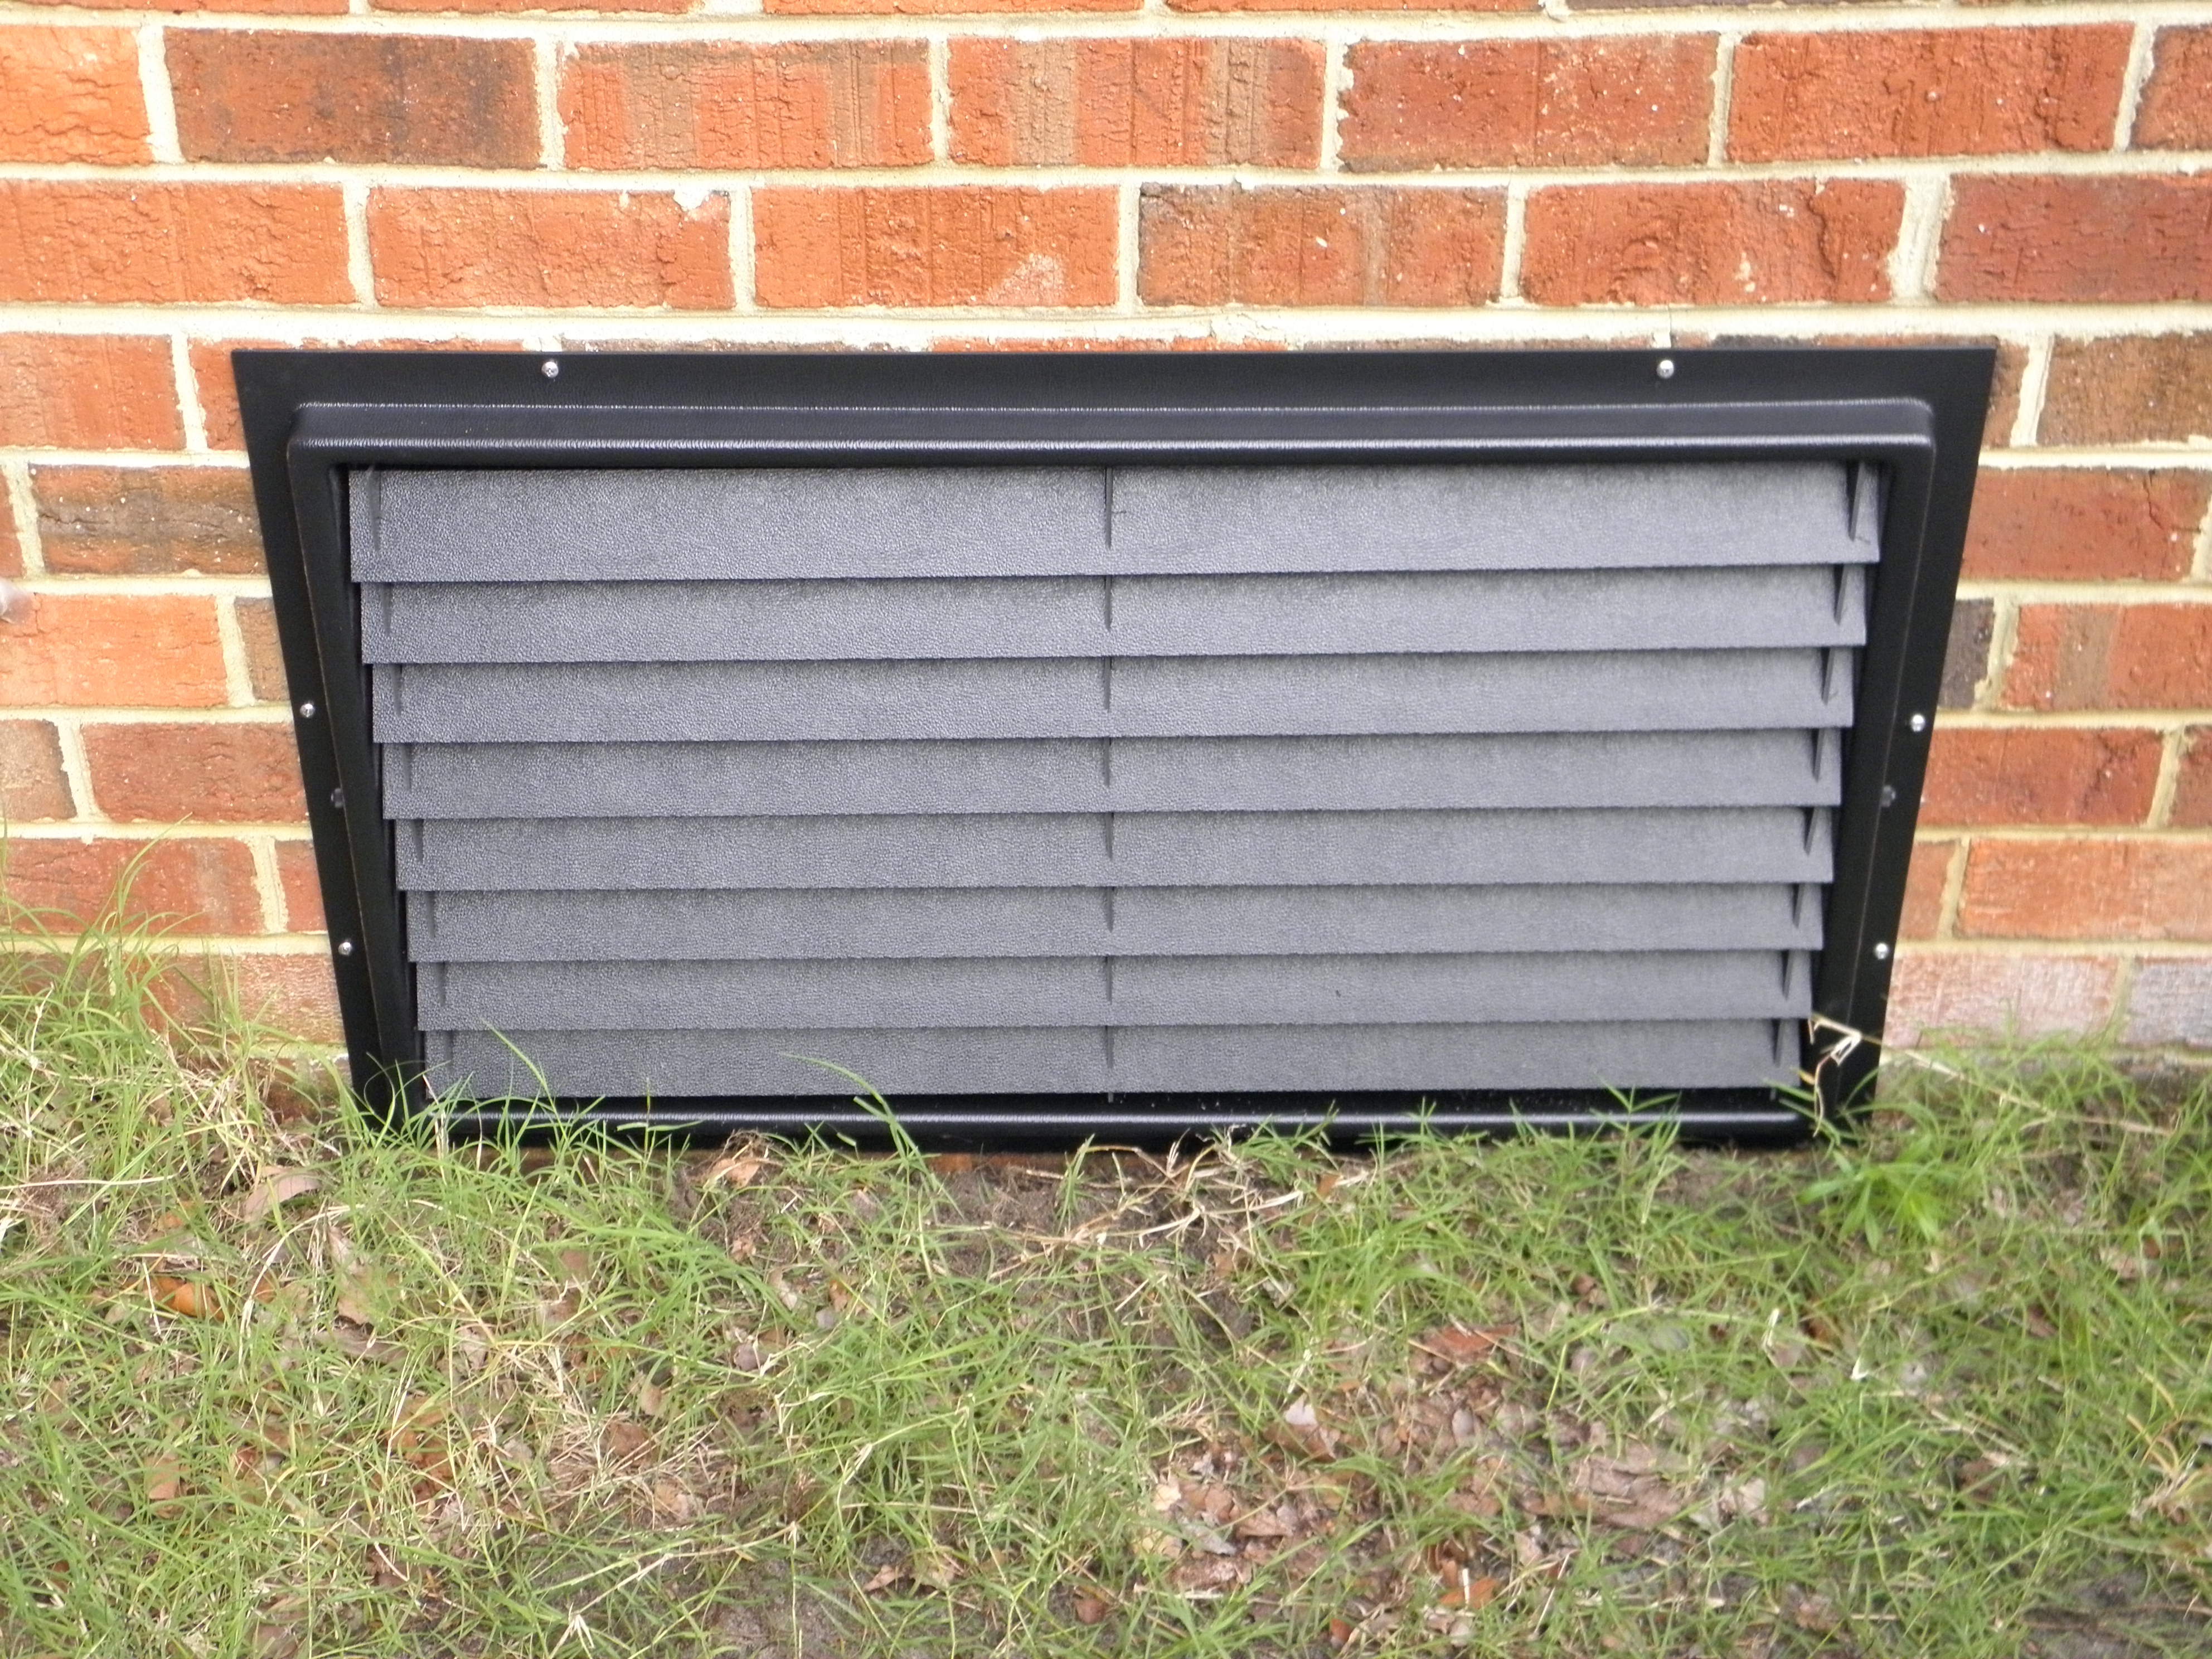 Crawl Space Ventilation Systems : Crawlspace door vent crawl space systems